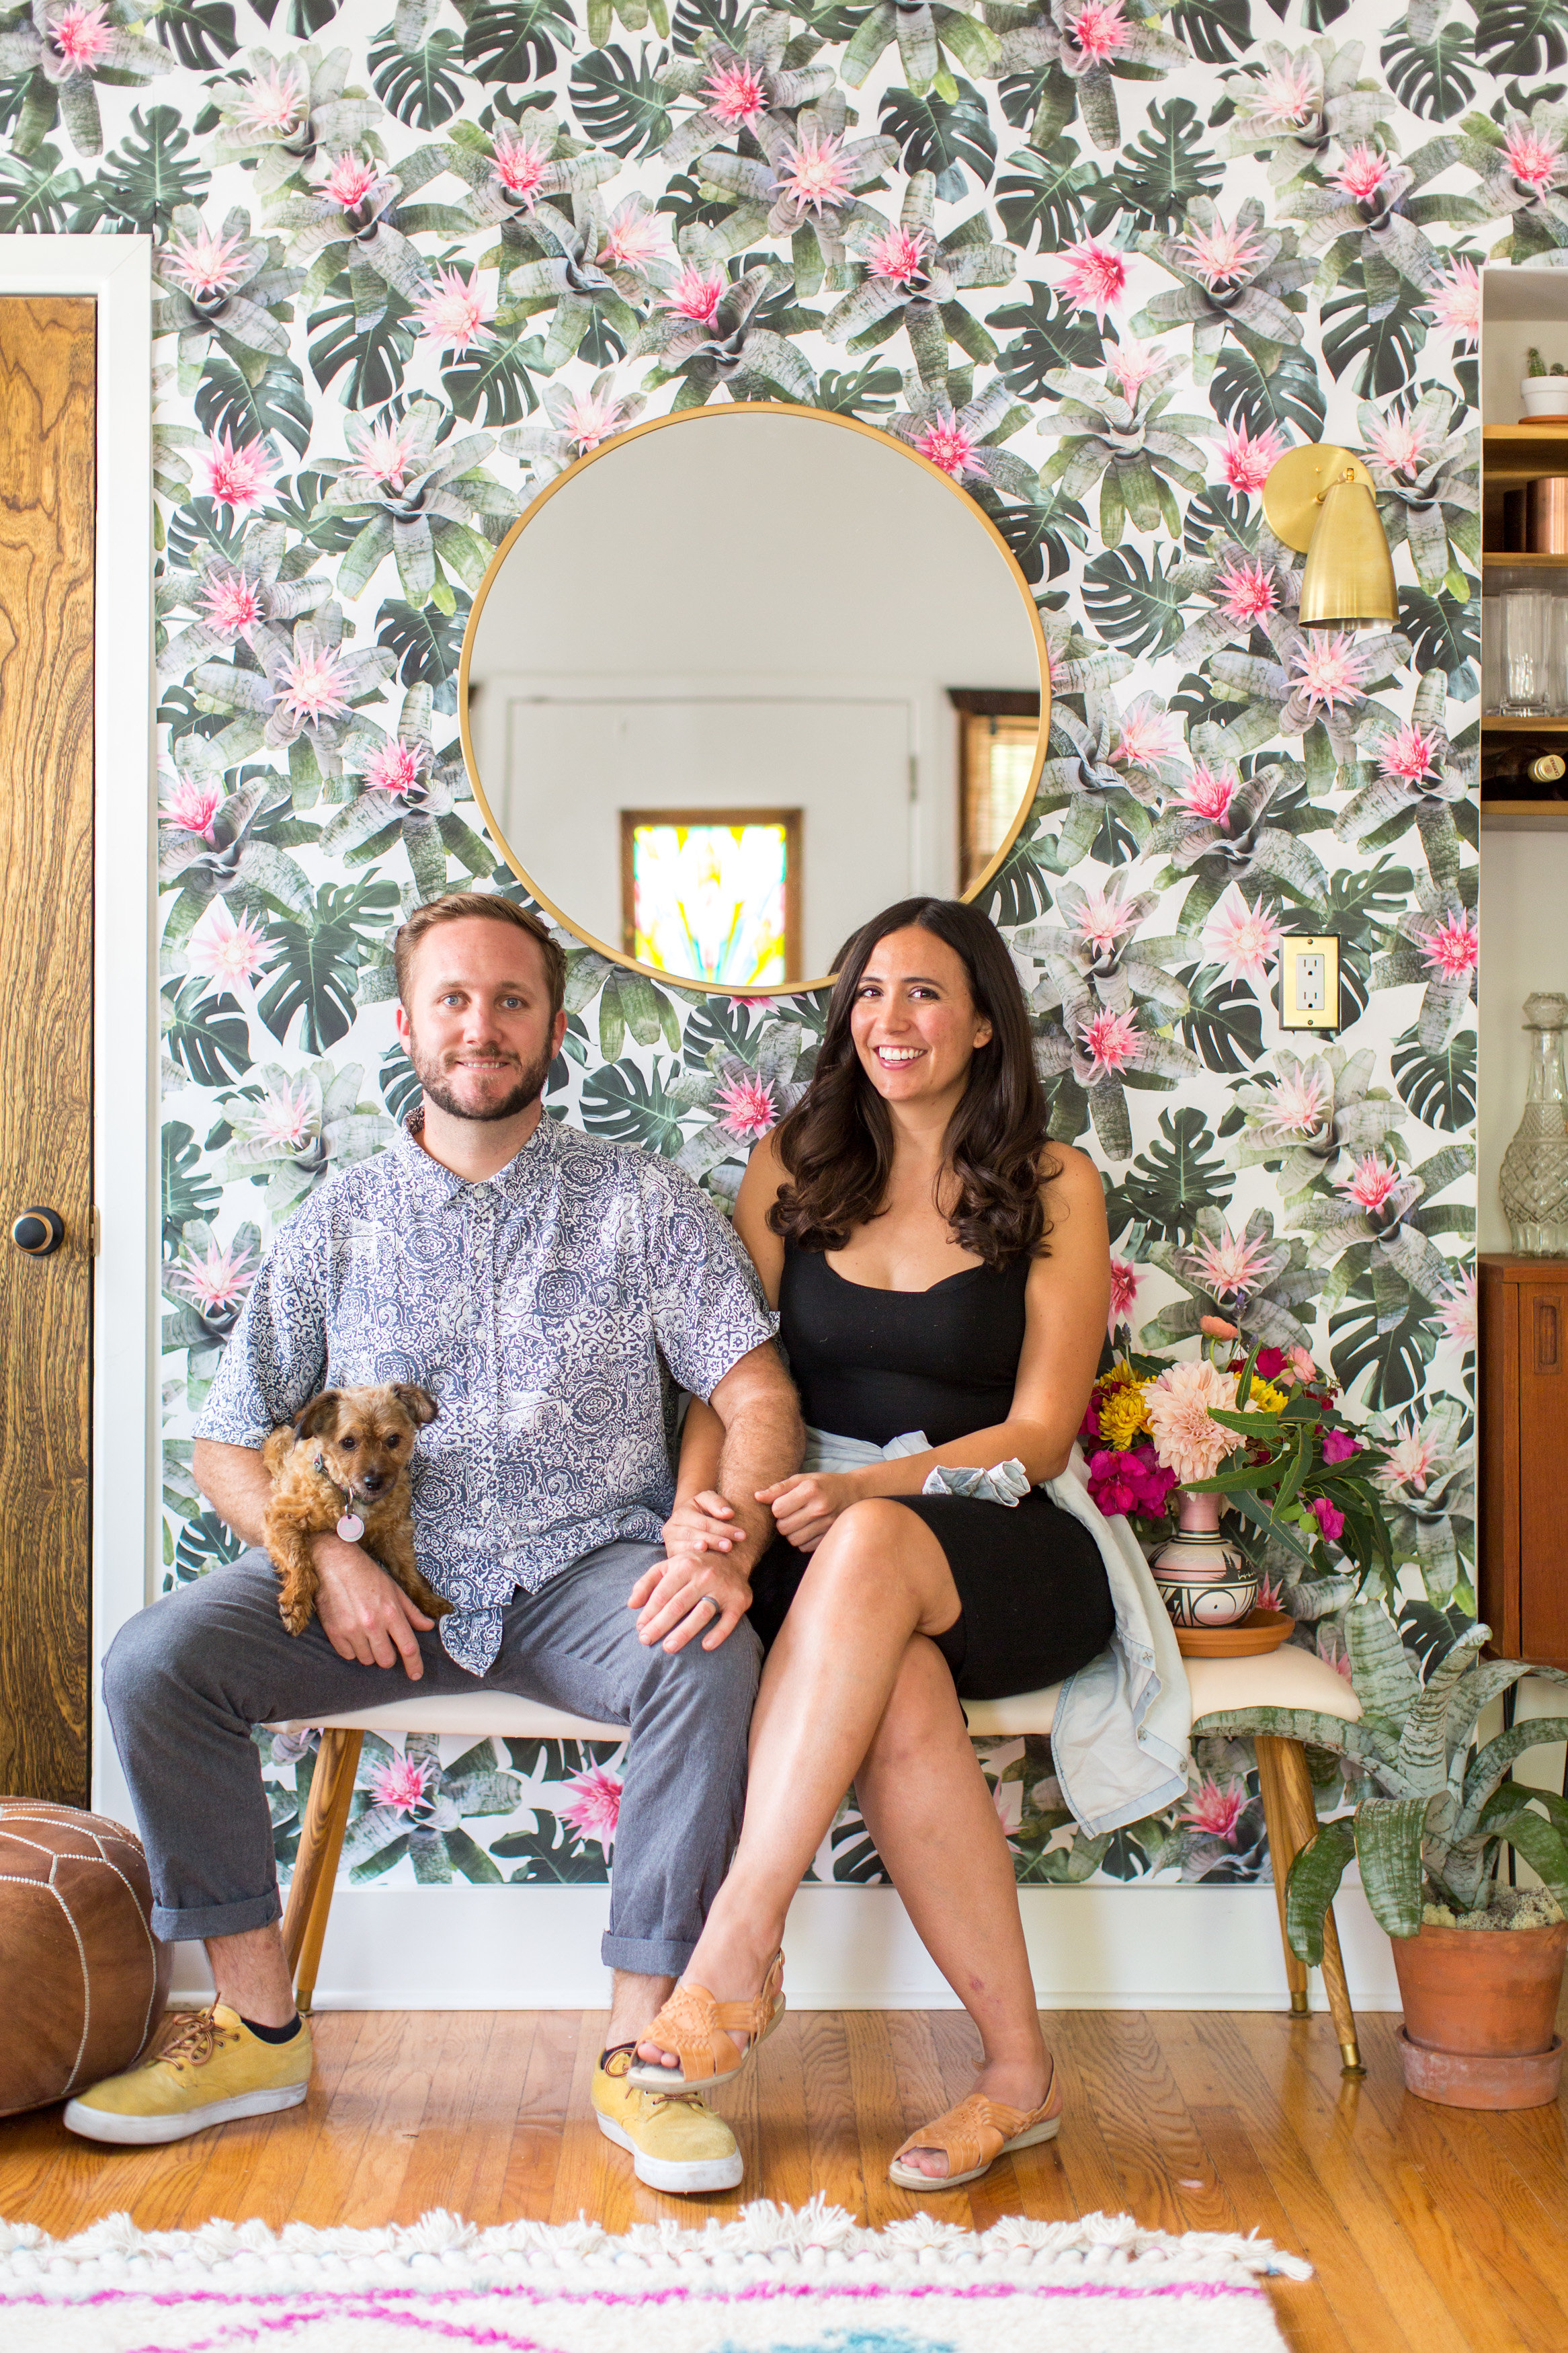 Samantha Santana & her husband James Lively in her home (in 2017), featuring her rad bromeliad wallpaper. Oh, and their puppy Animal is there too. Photo Credit - Marissa Vitale